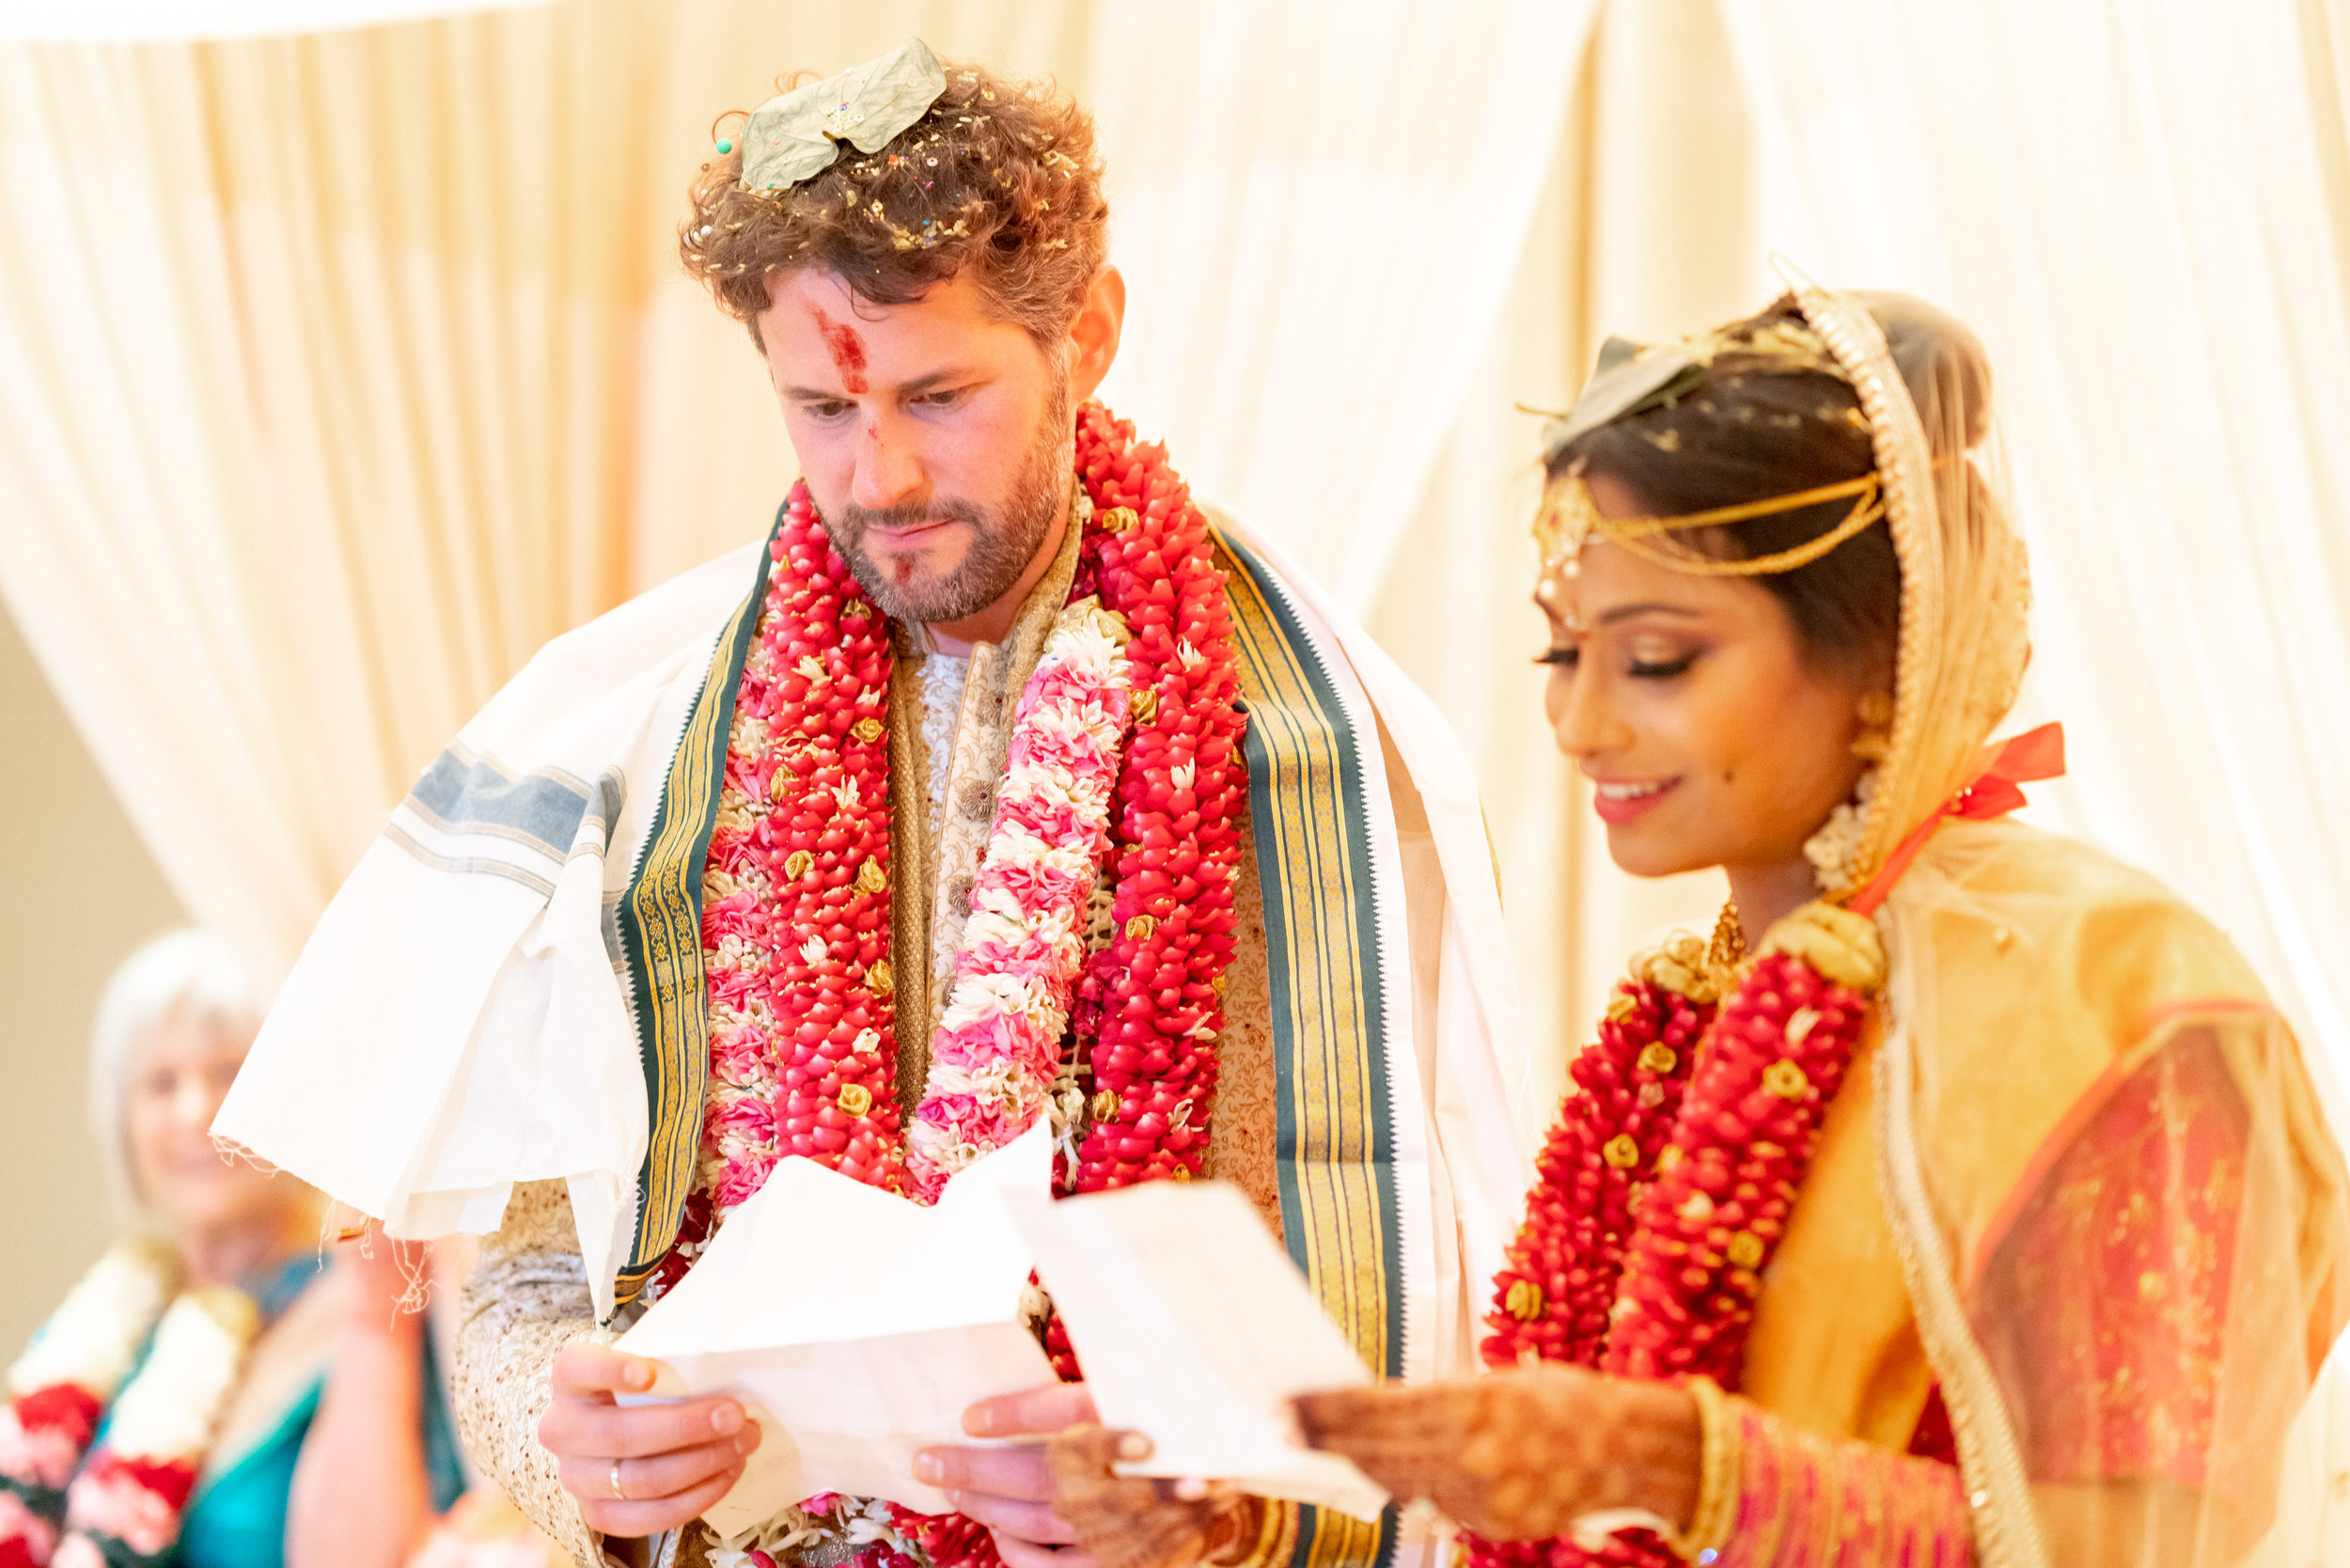 Bride reading traditional indian vows during wedding ceremony at bethesda north marriott